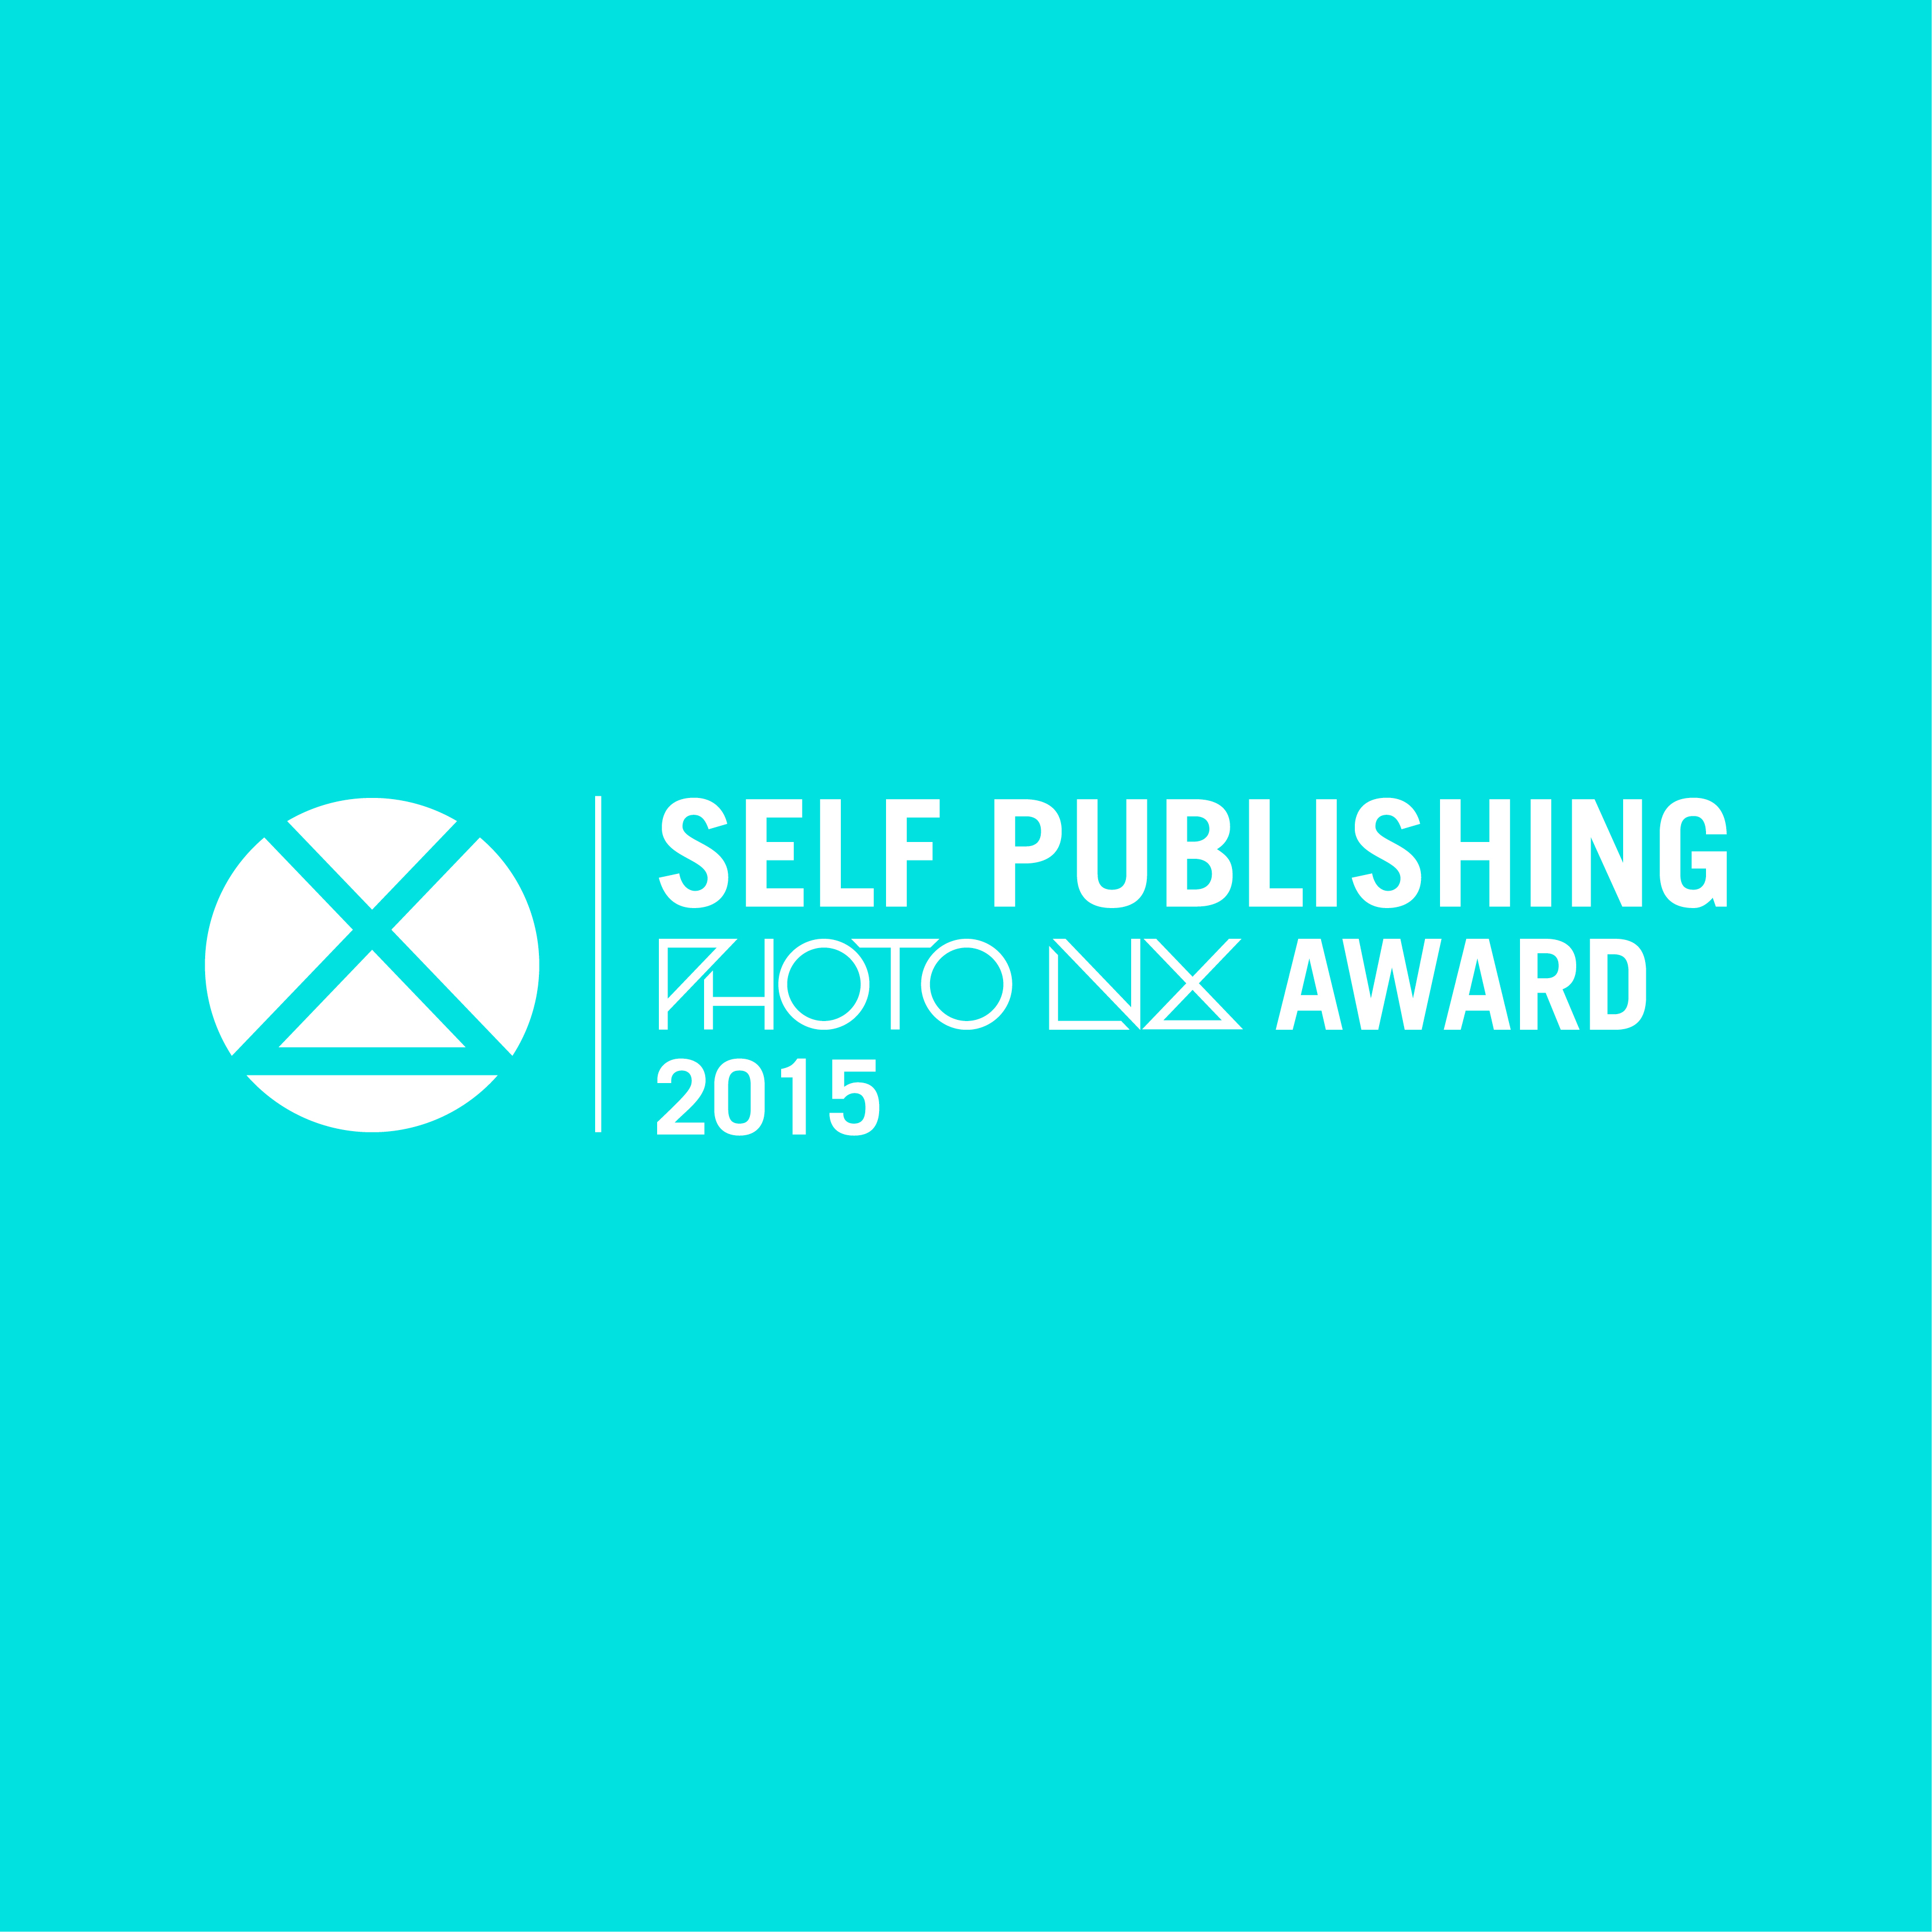 Self Publishing PHOTOLUX Award